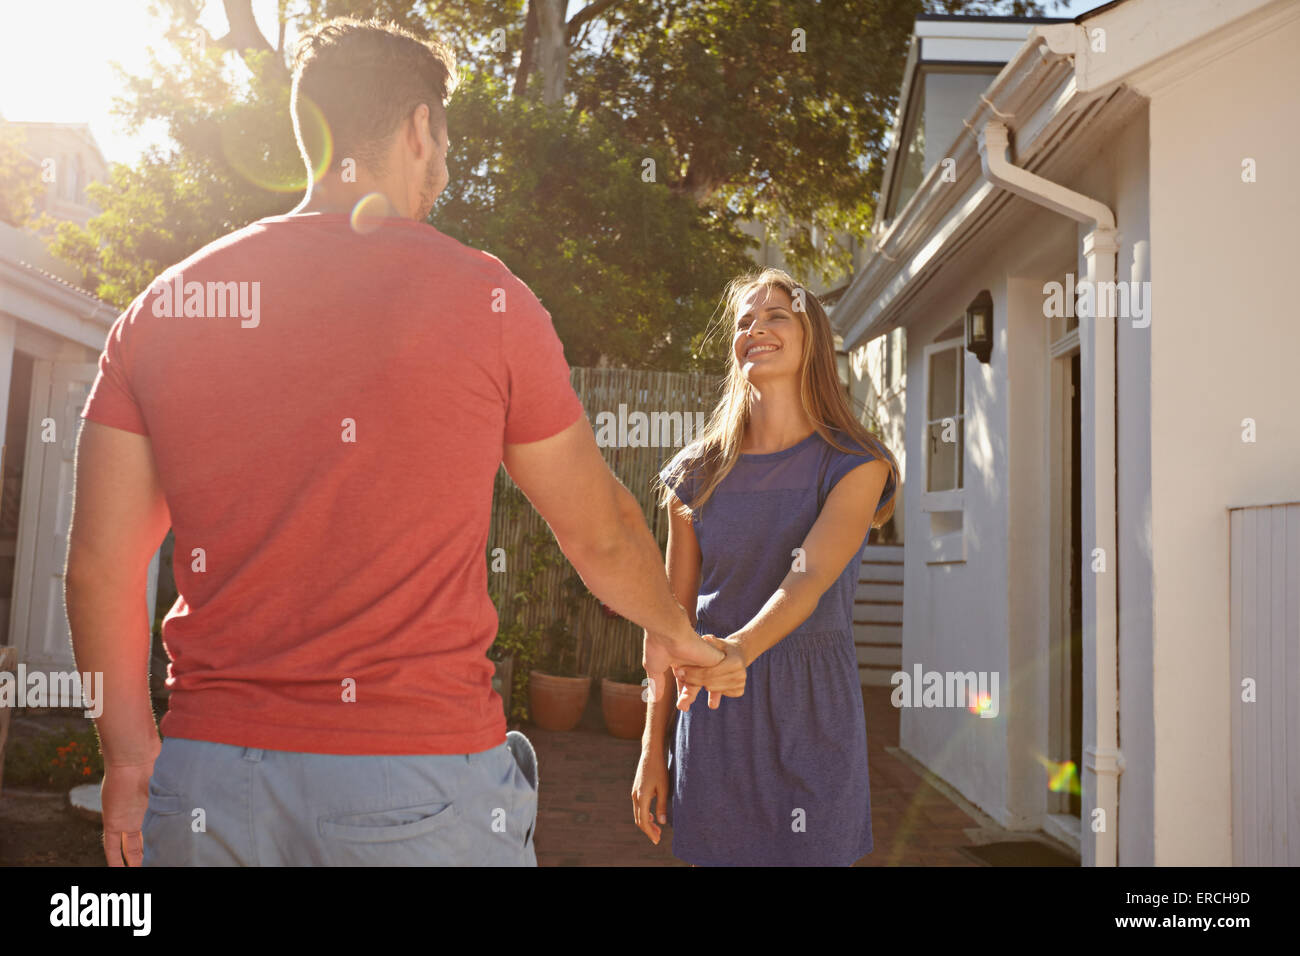 Happy young woman holding hand of her boyfriend and walking around their house. Loving young couple outdoors in - Stock Image